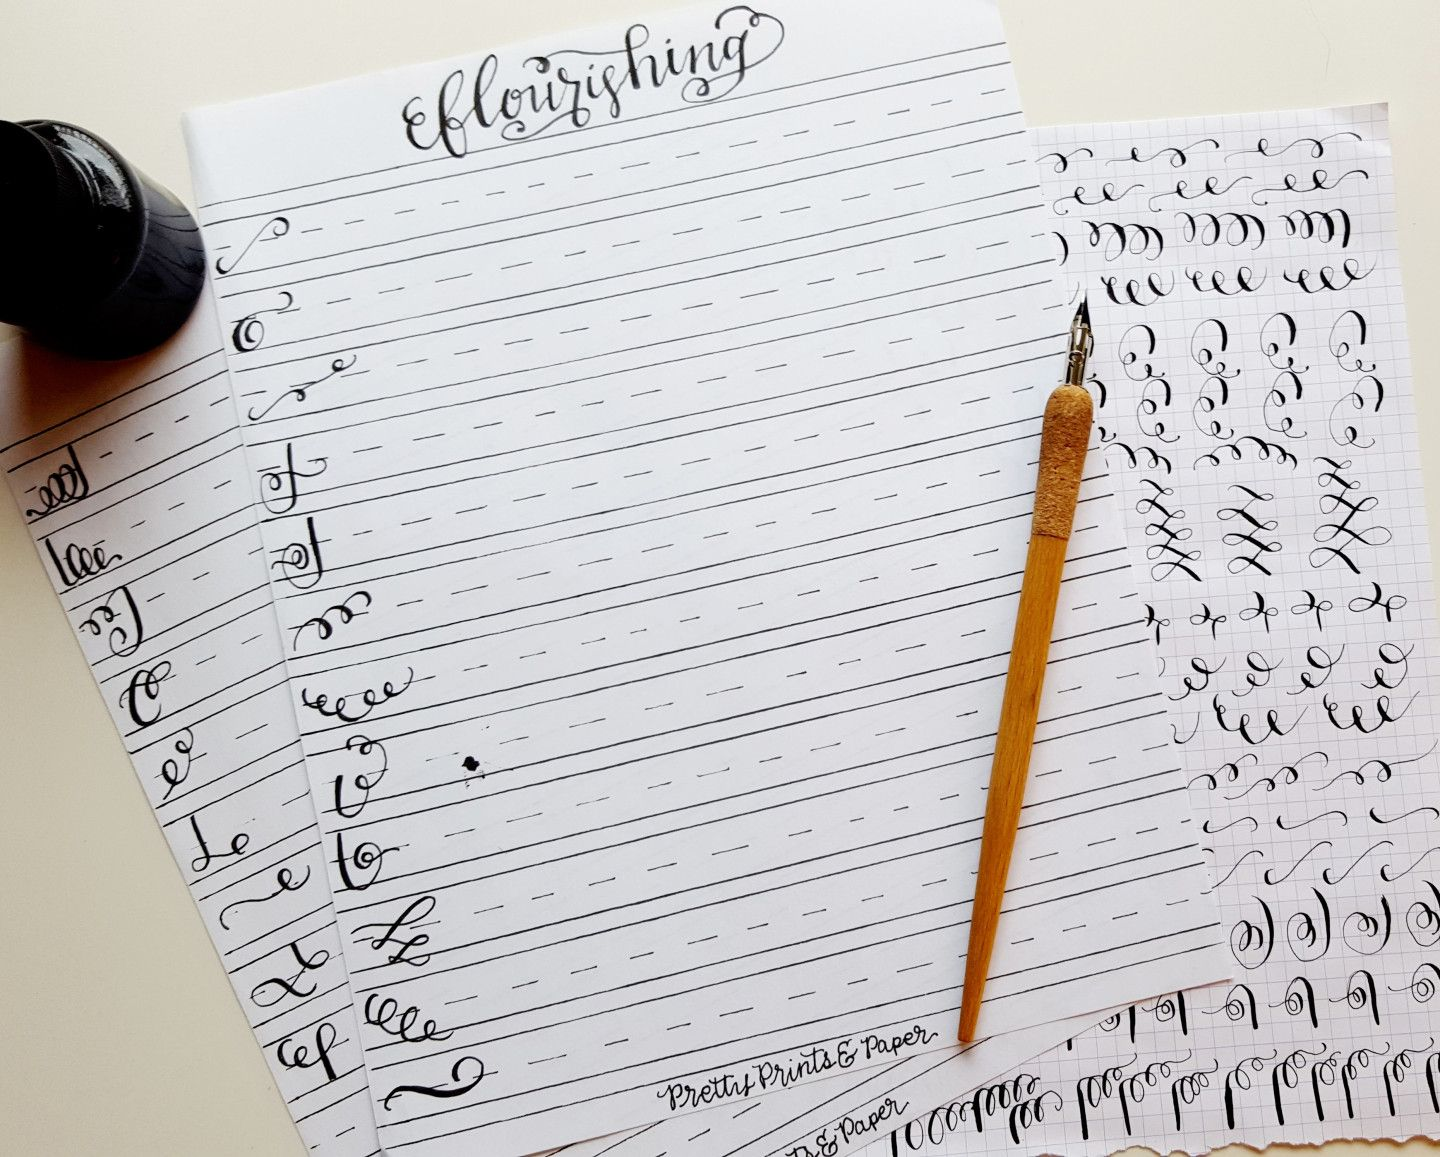 Download your own copy of my calligraphy flourish practice sheet